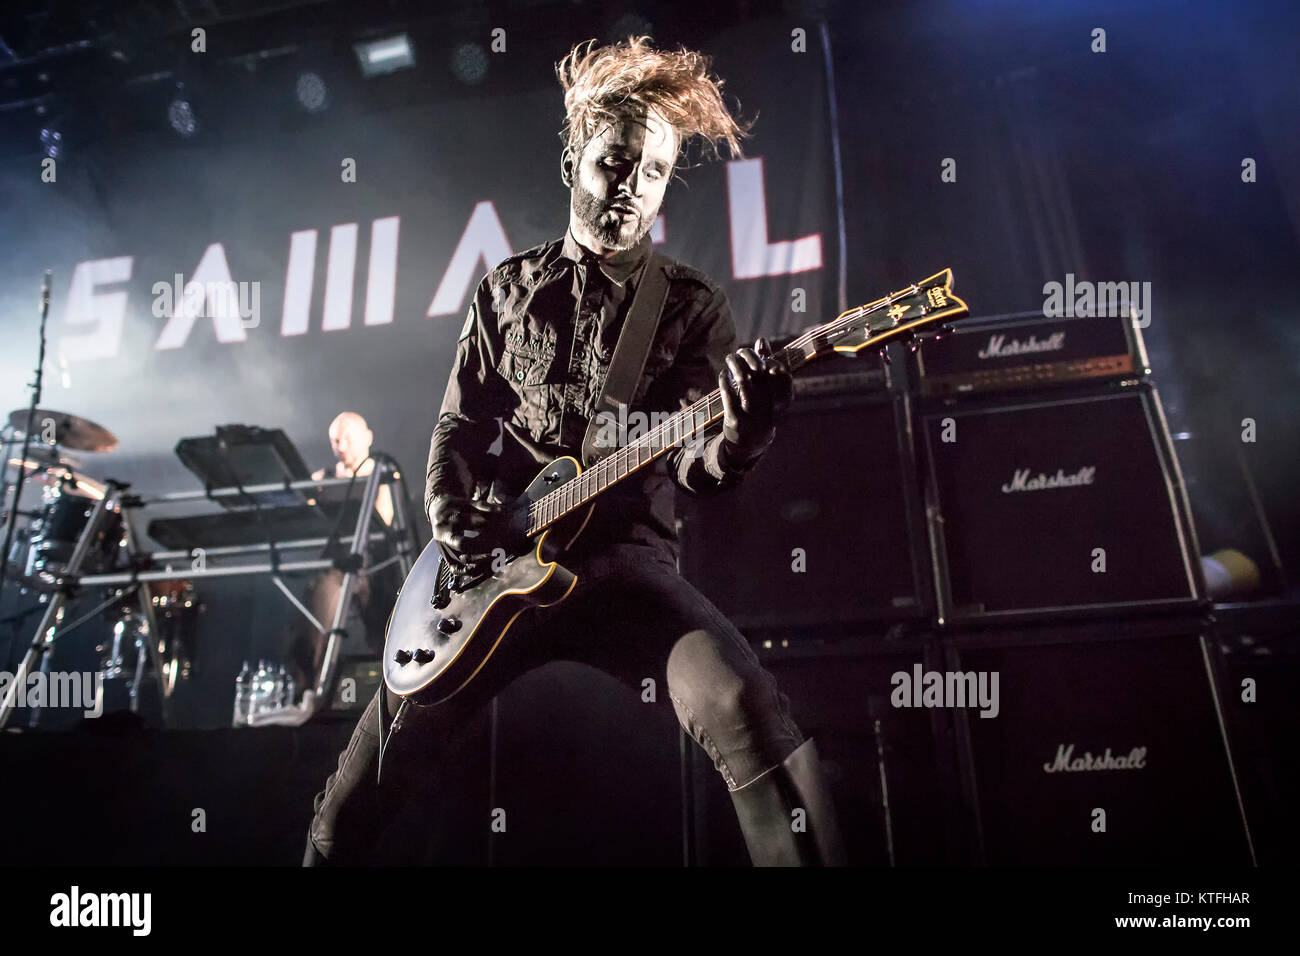 The Swiss industrial metal band Samael performs a live concert at ...